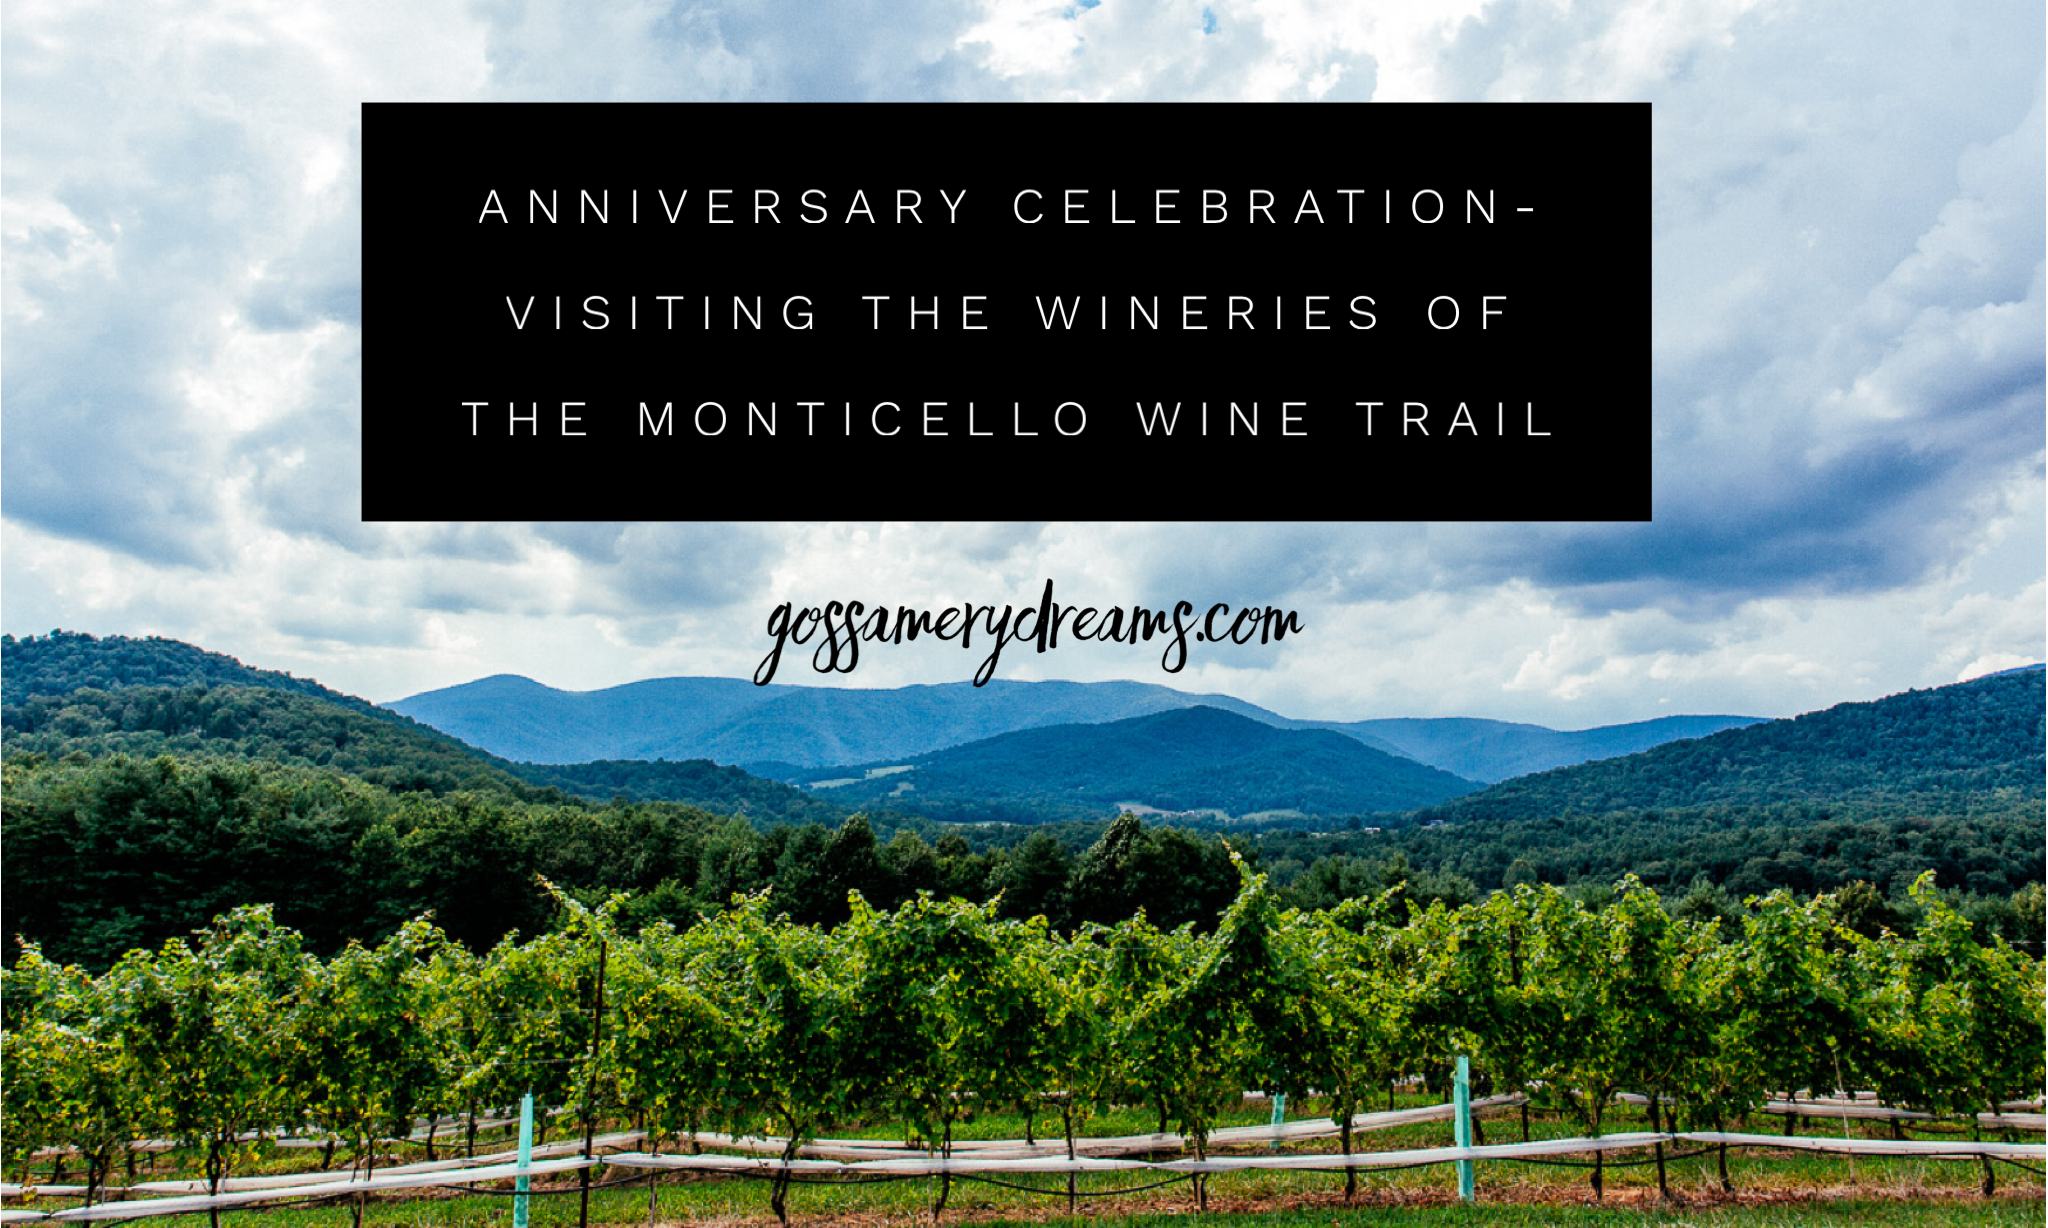 Anniversary Celebration-Visiting the wineries of the Monticello Wine Trail @gossamerydreams.com